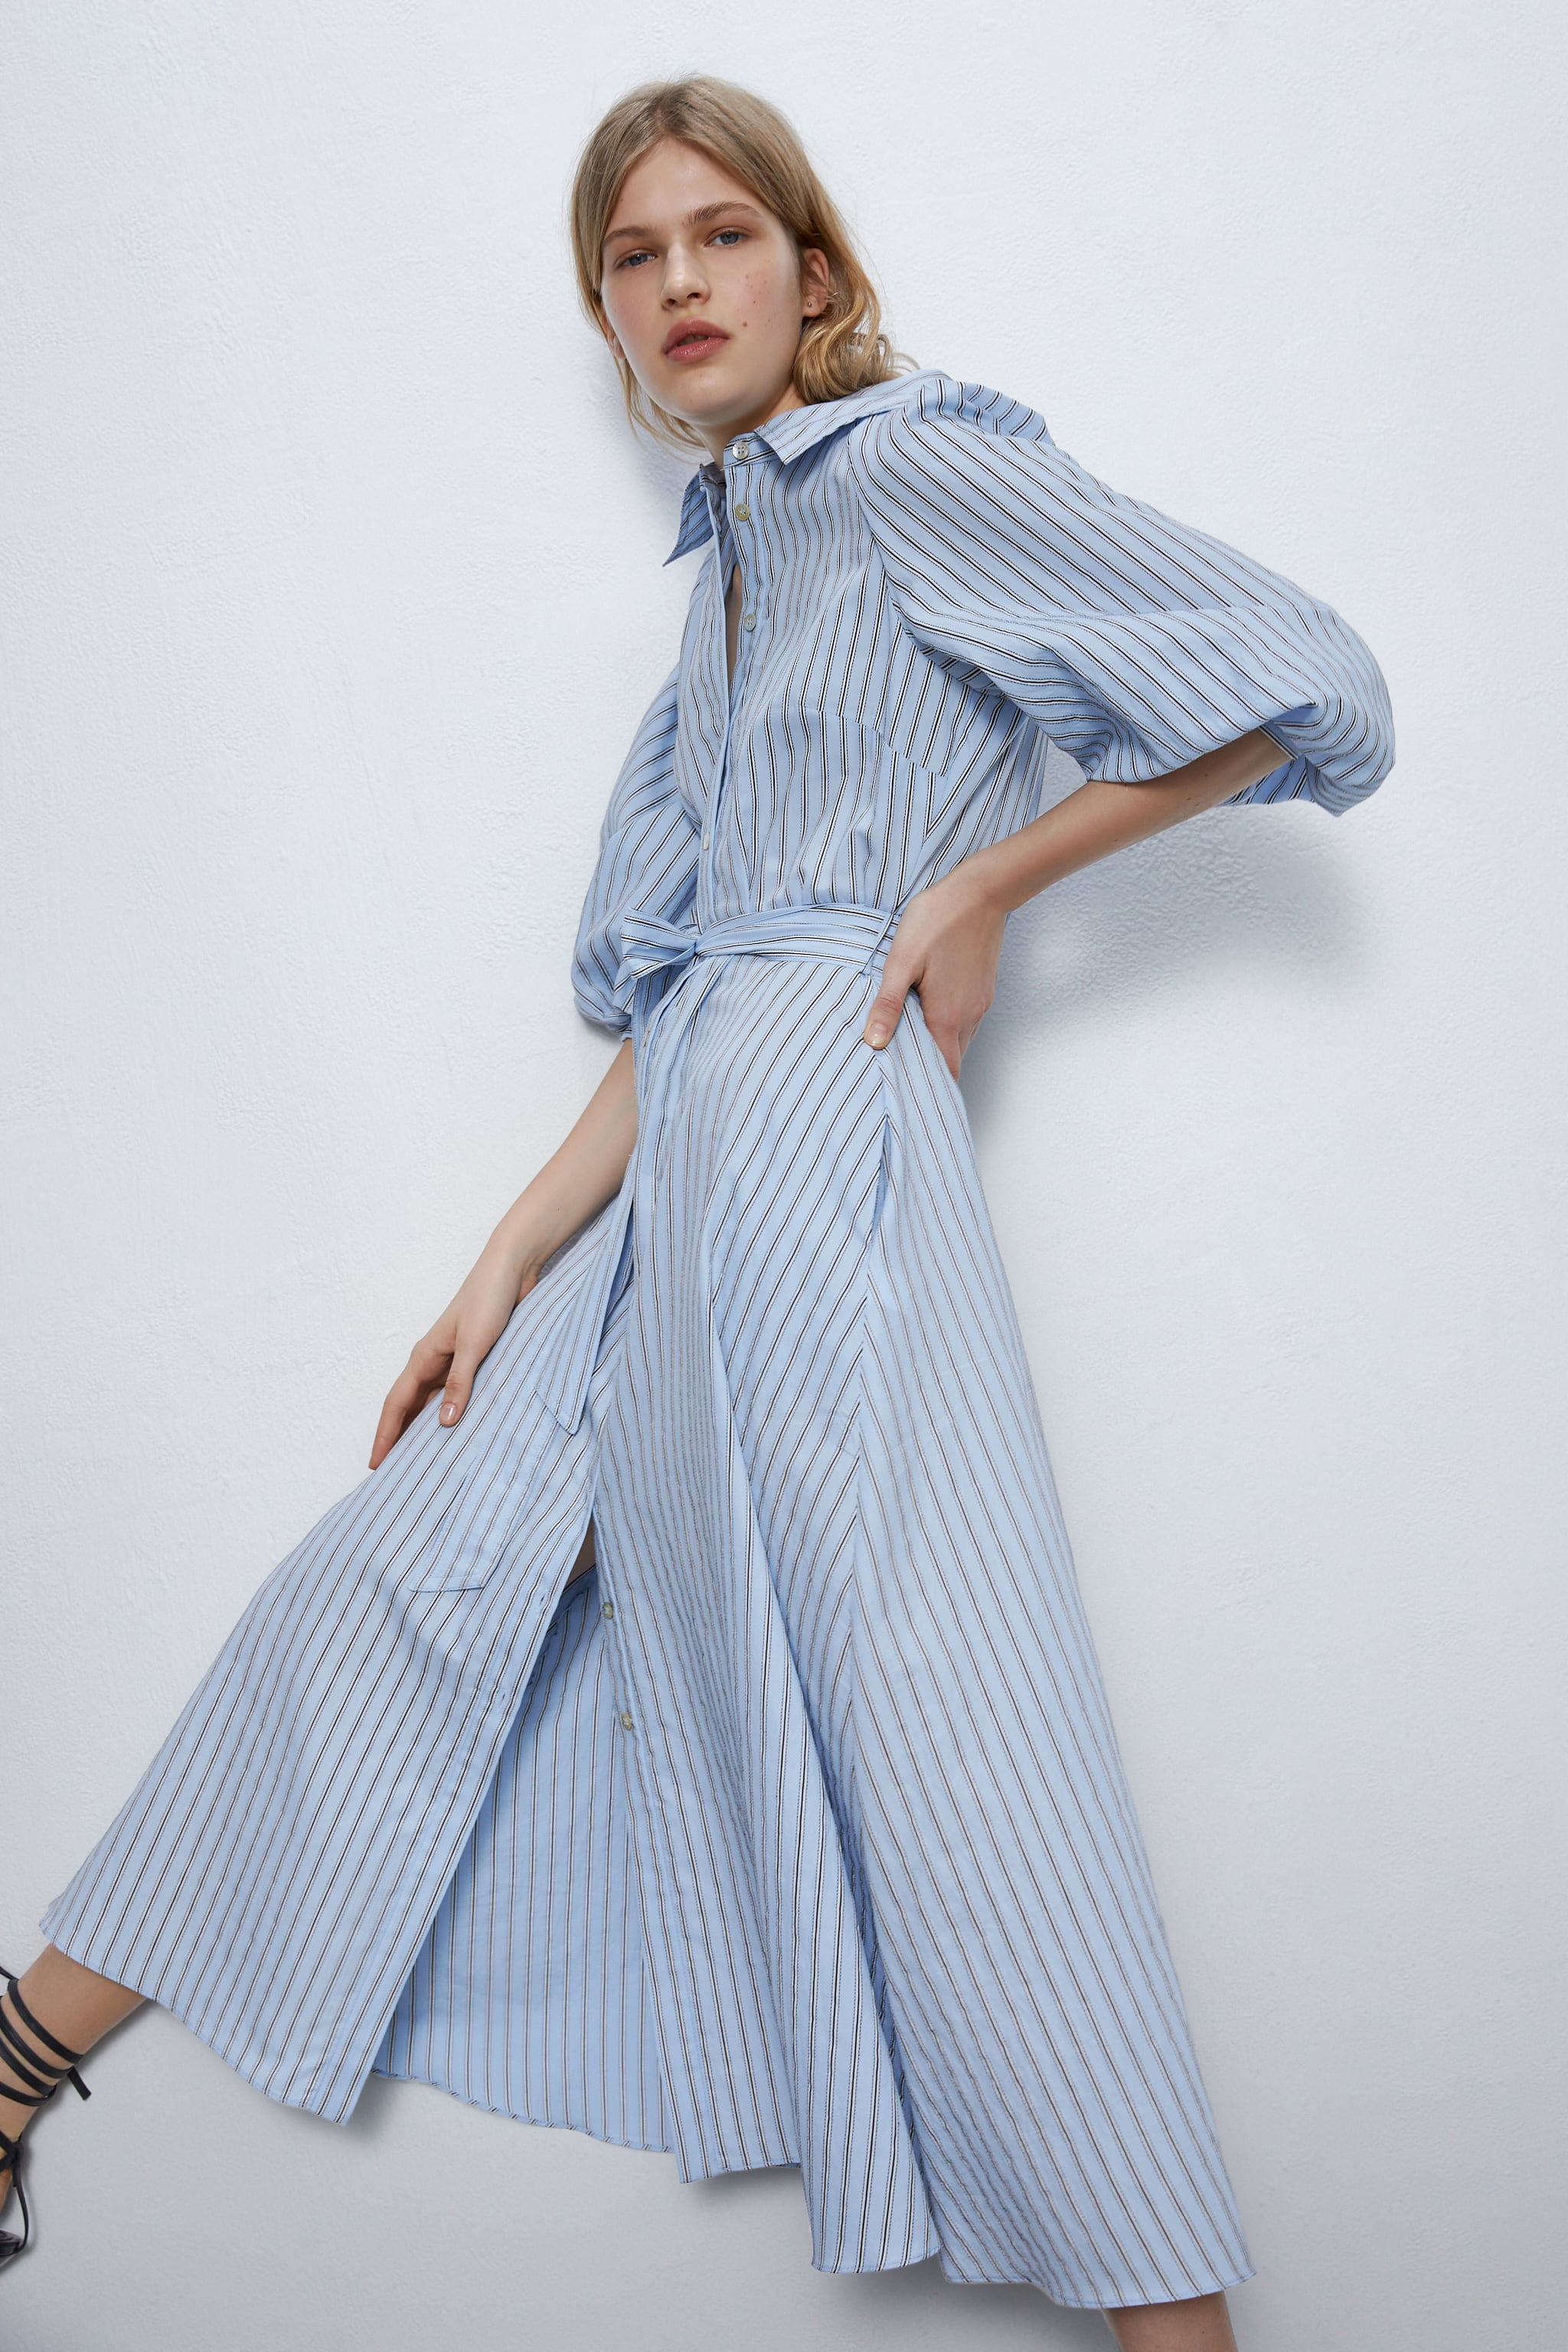 Zara Striped Shirt Dress £59.99